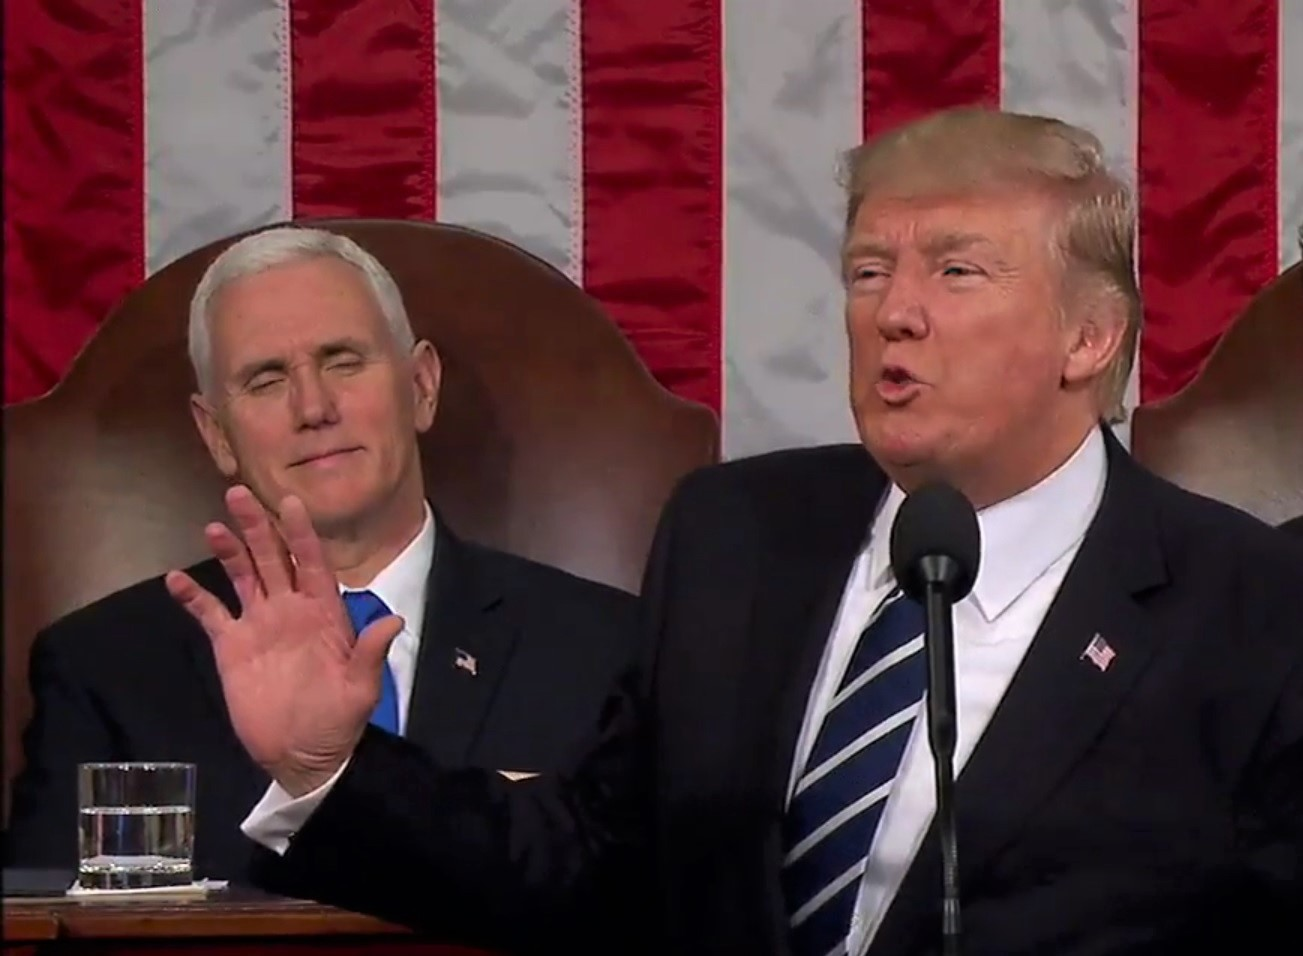 Deep Space Gateway >> Trump's speech evokes 'distant worlds' – but that's it for science and tech